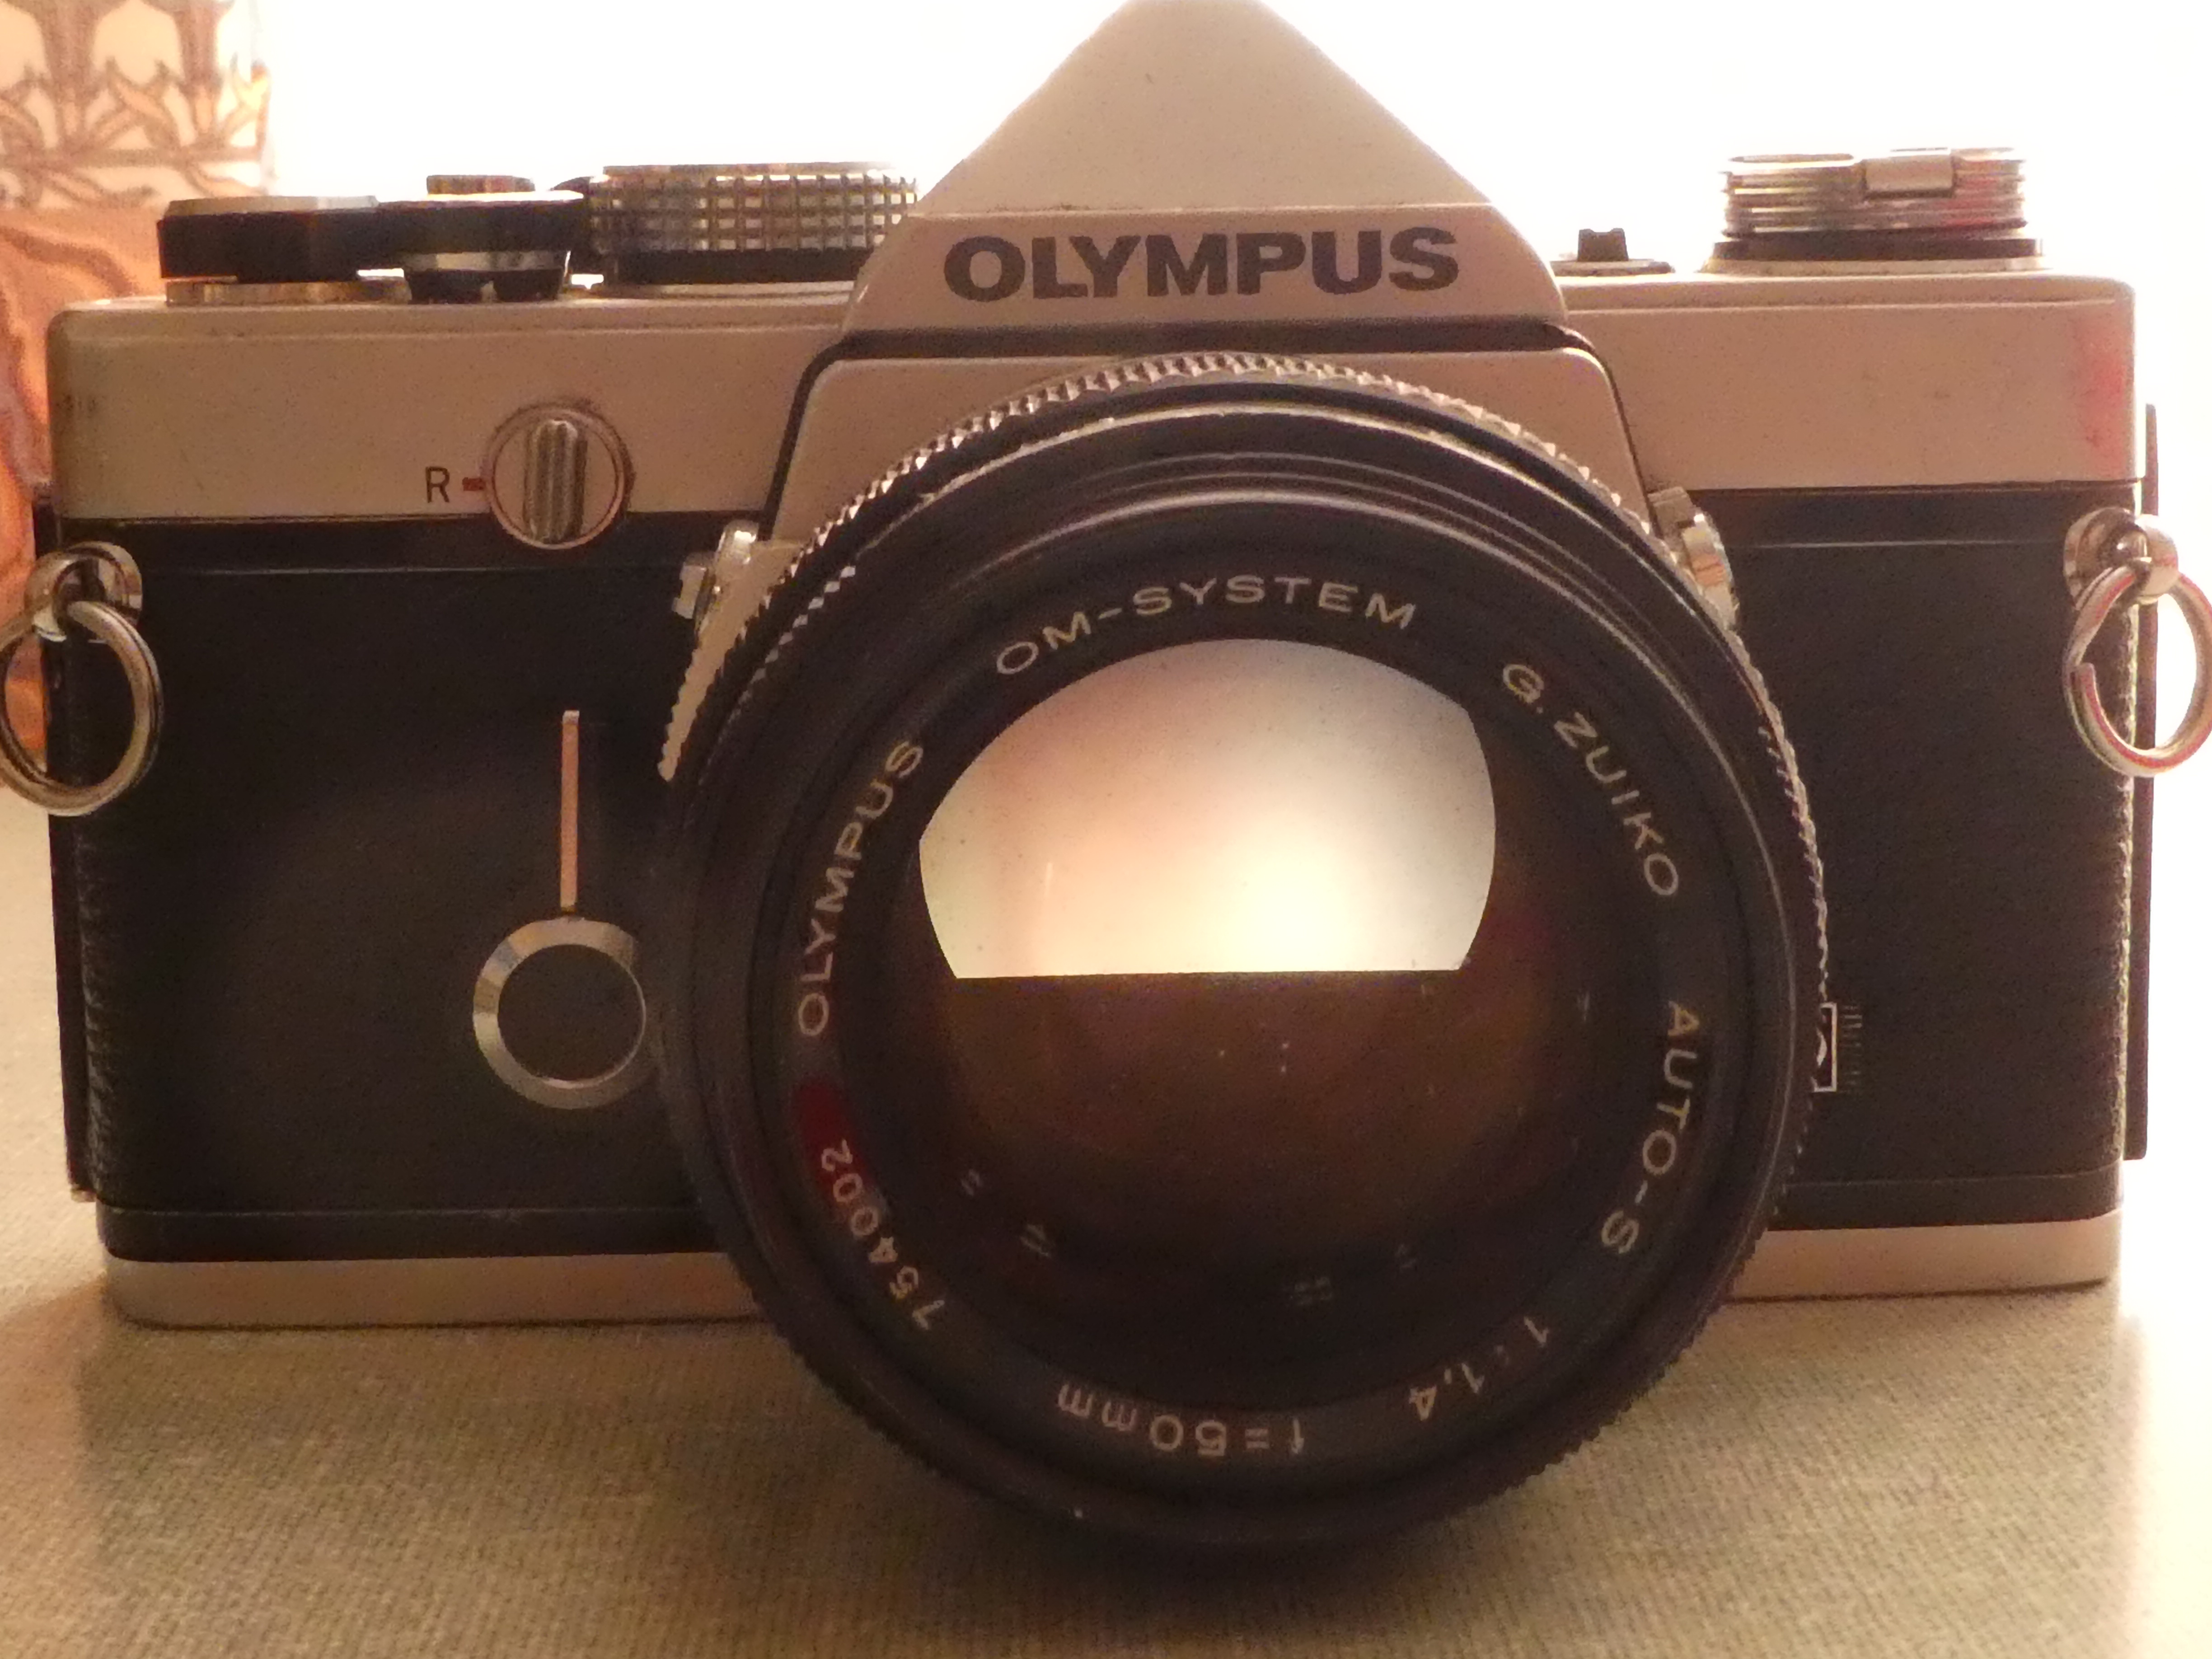 Olympus Om1n Johns Cameras Off If You Tip The Camera Over This Fully Exposes Flash Circuit